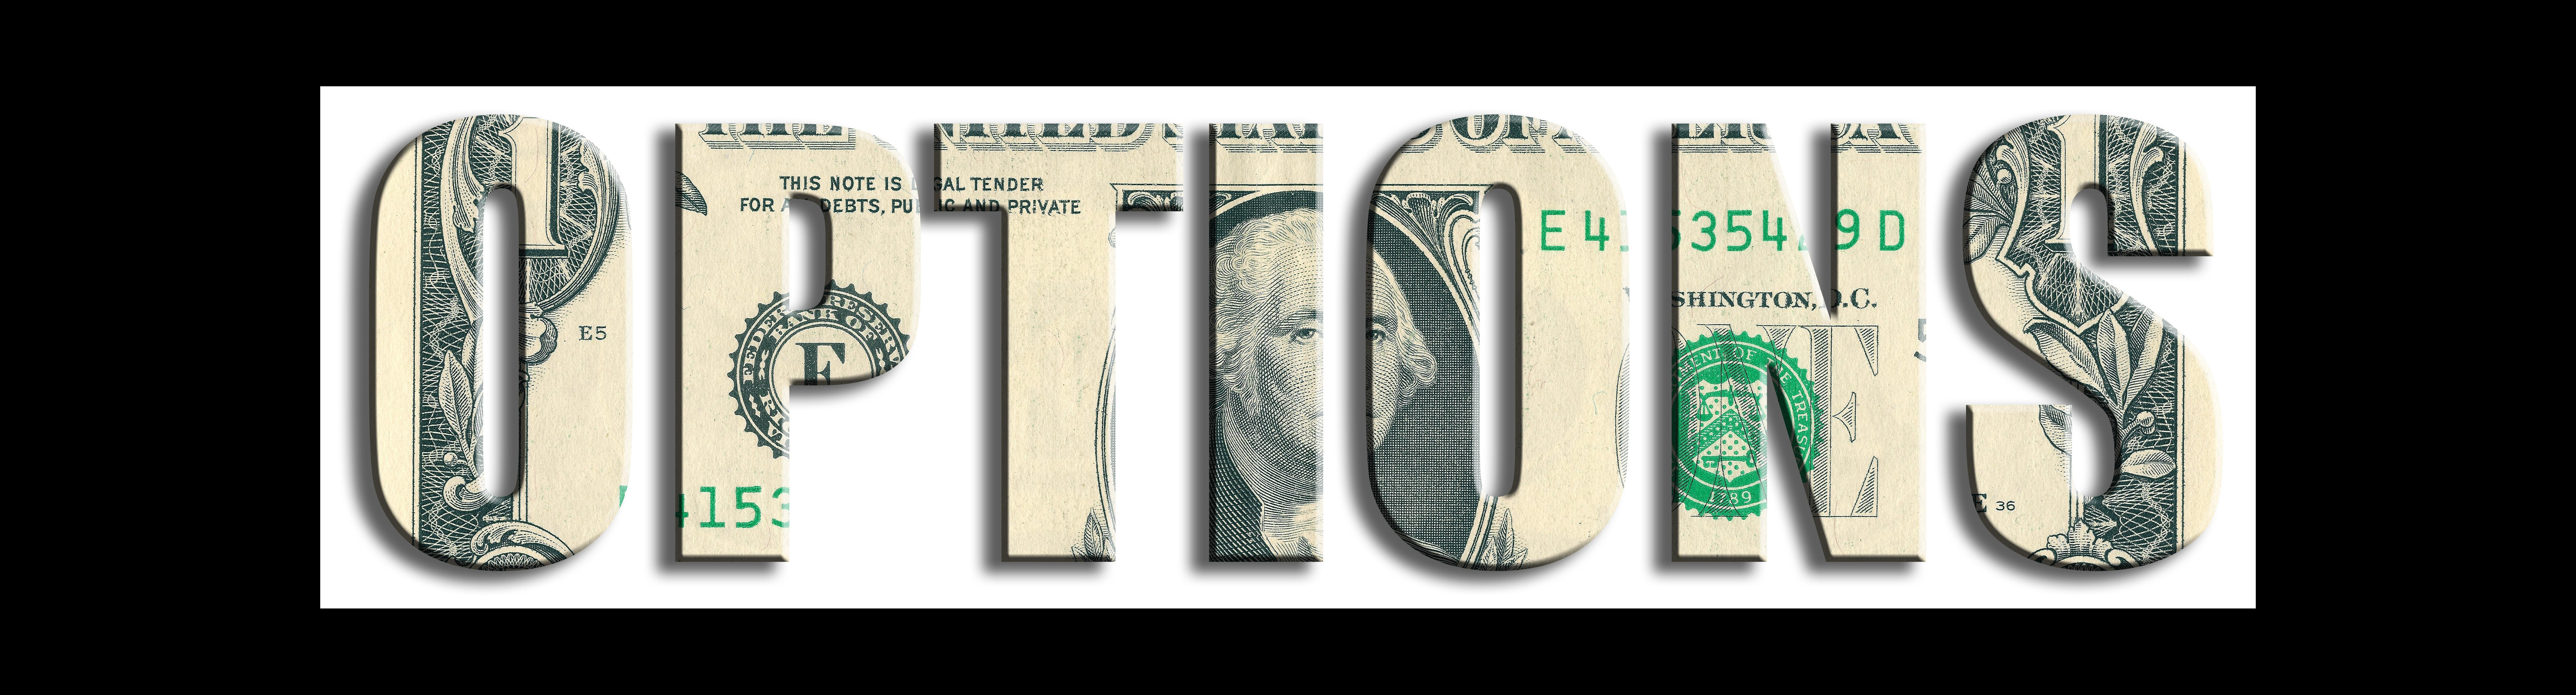 Do You Understand Your Stock Options? Thumbnail